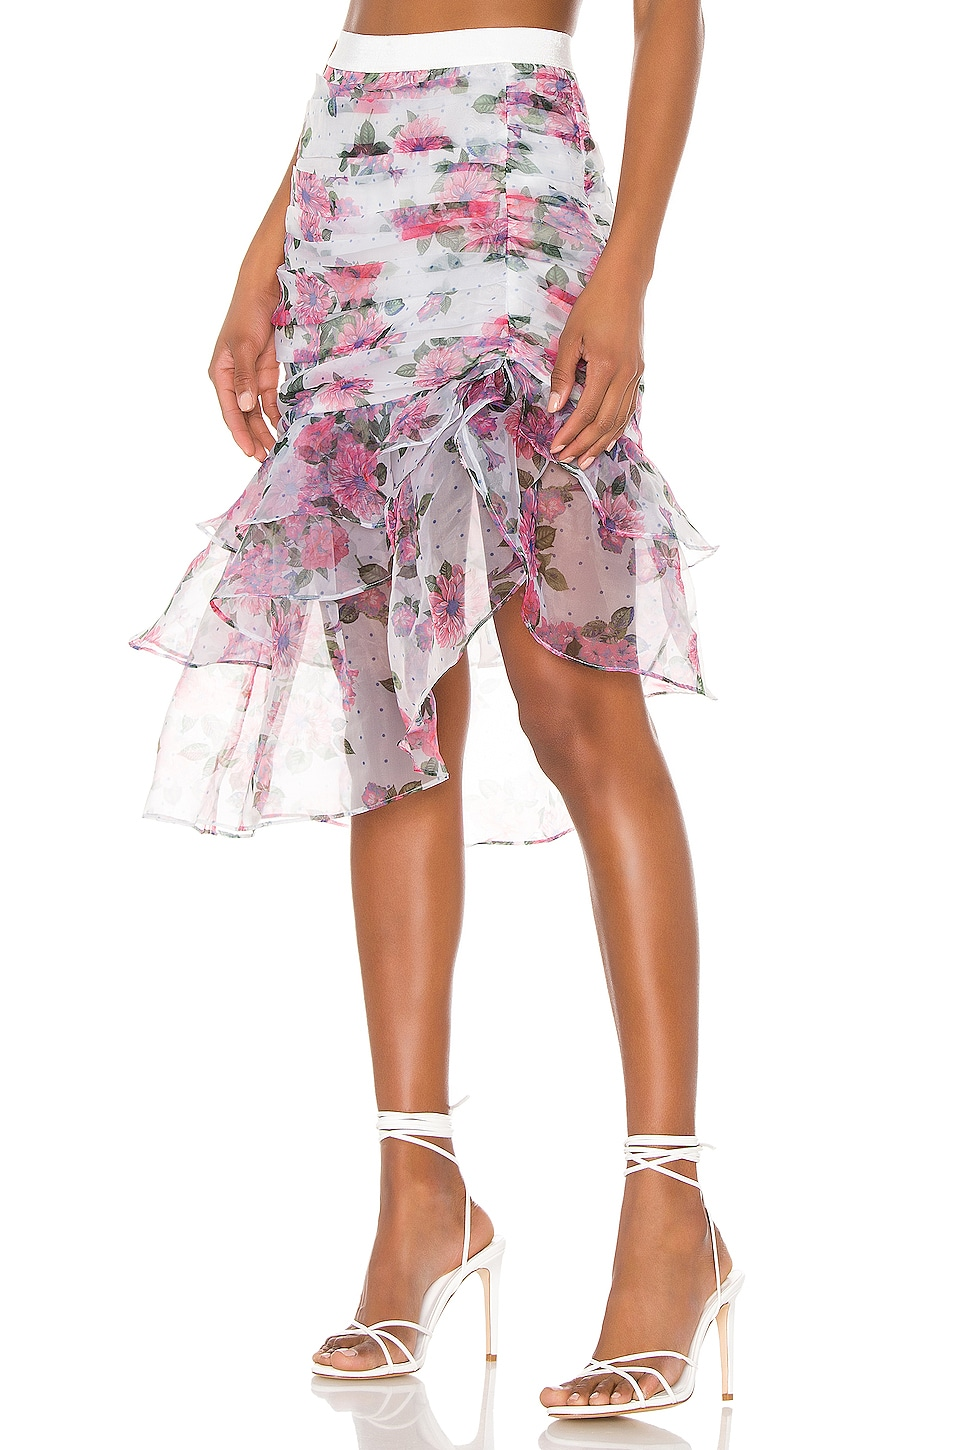 For Love & Lemons X REVOLVE Asymmetric Ruffle Skirt in Pink & Blue Floral